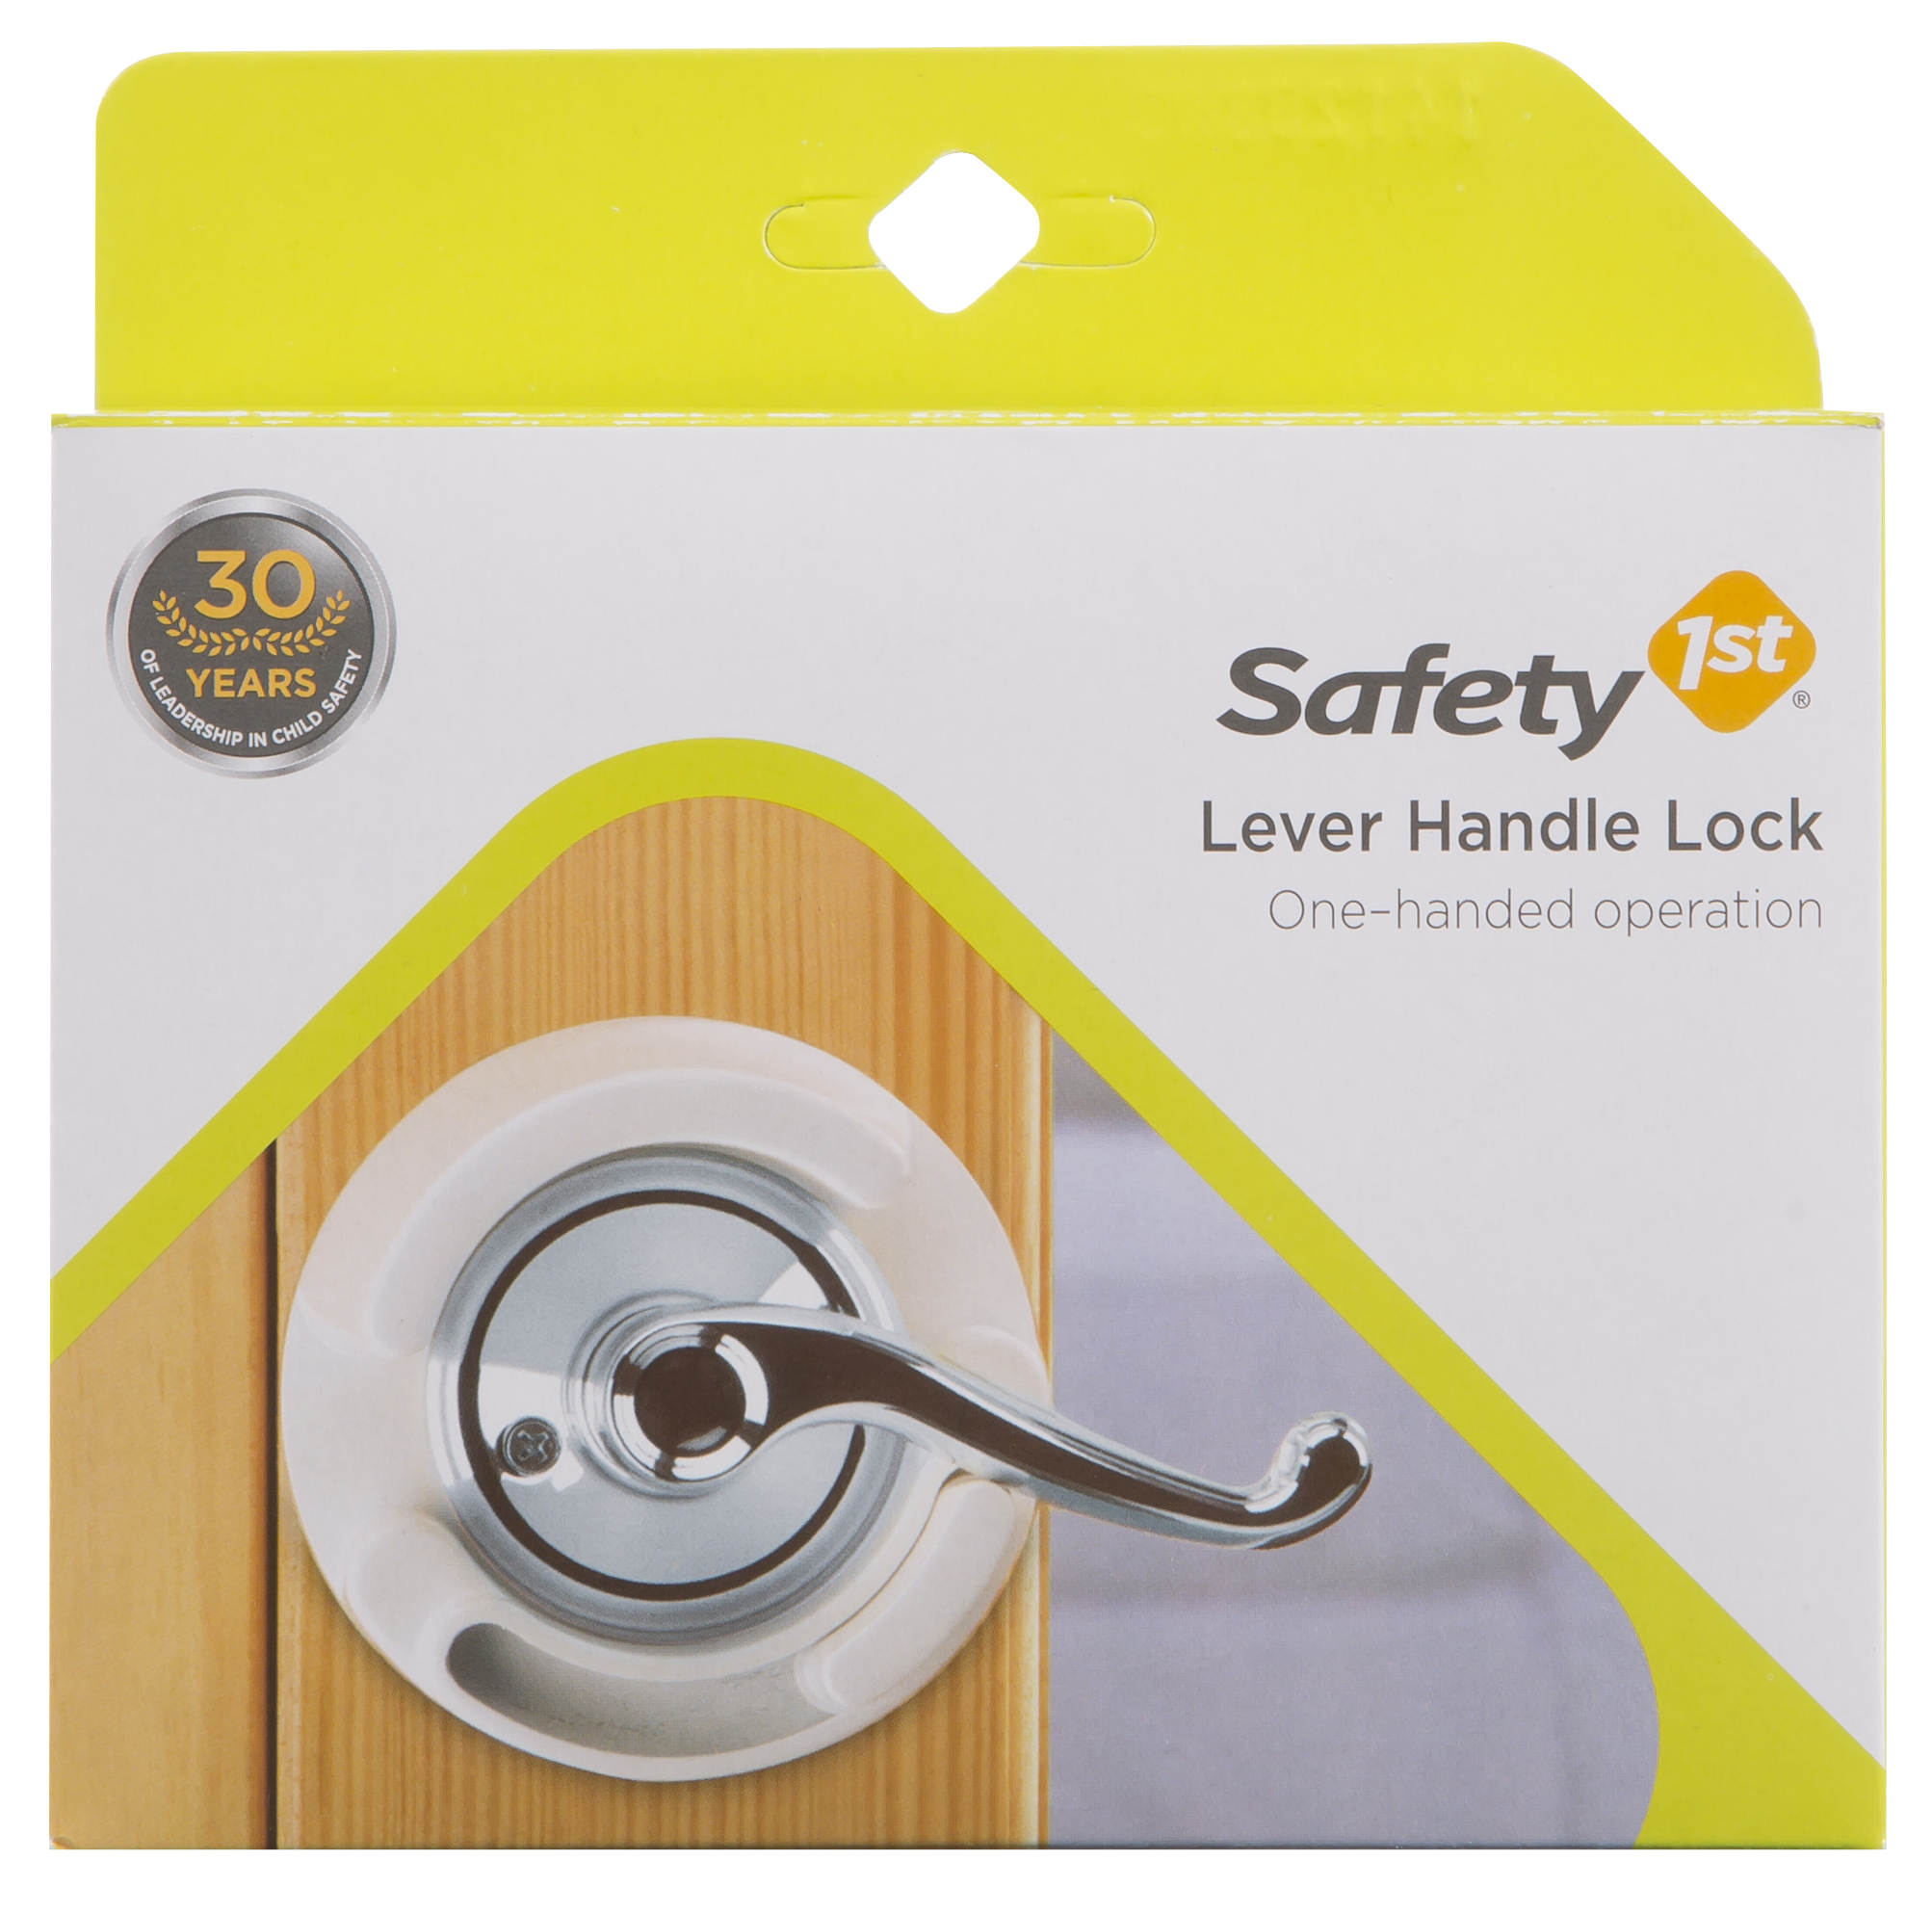 Safety 1st Lever Handle Lock, White